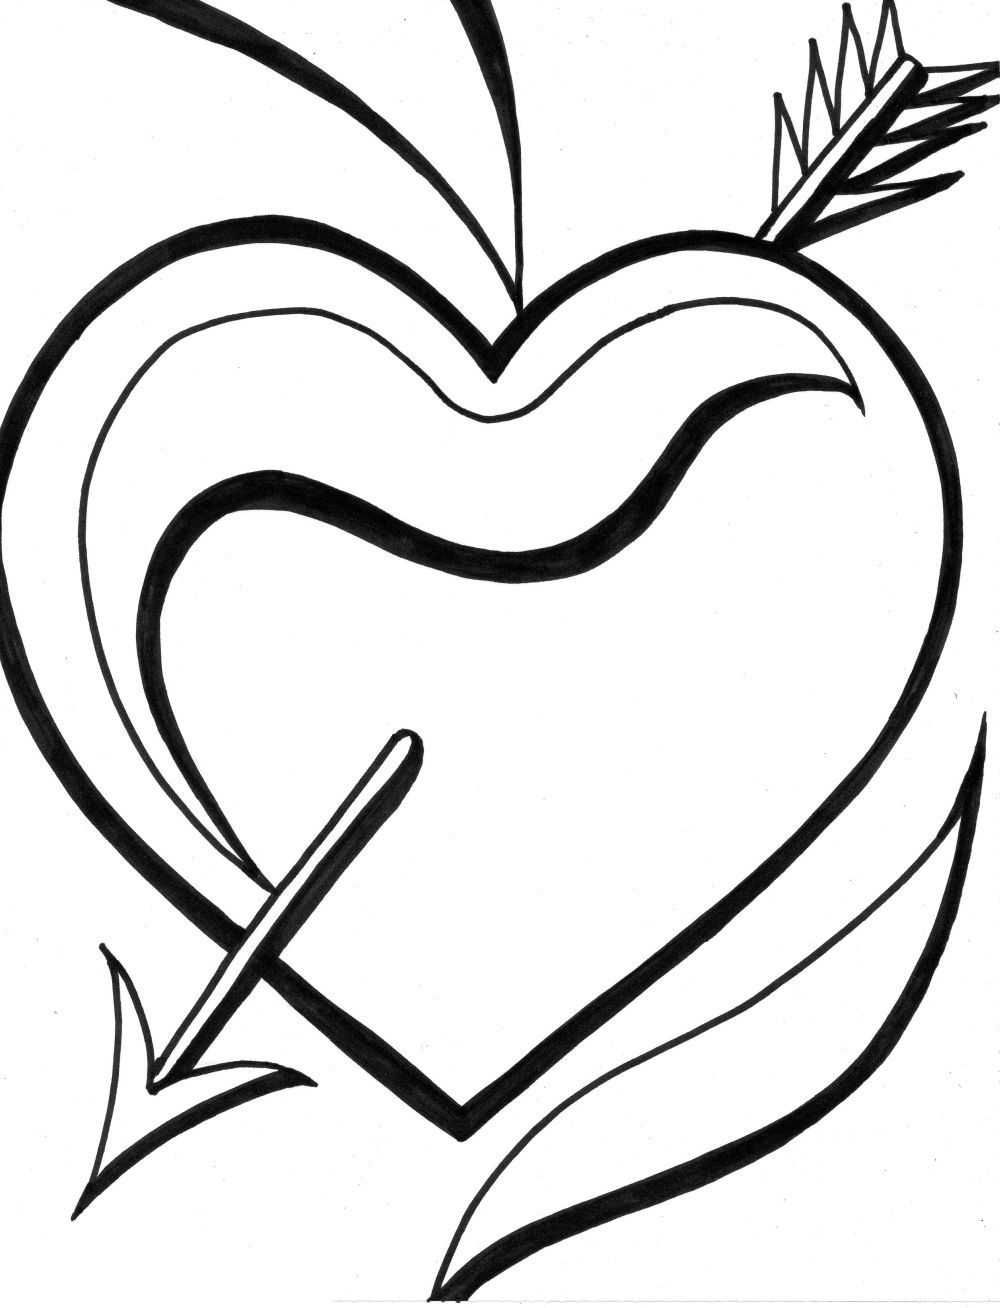 hearts coloring sheet heart coloring pages 3 coloring kids sheet hearts coloring